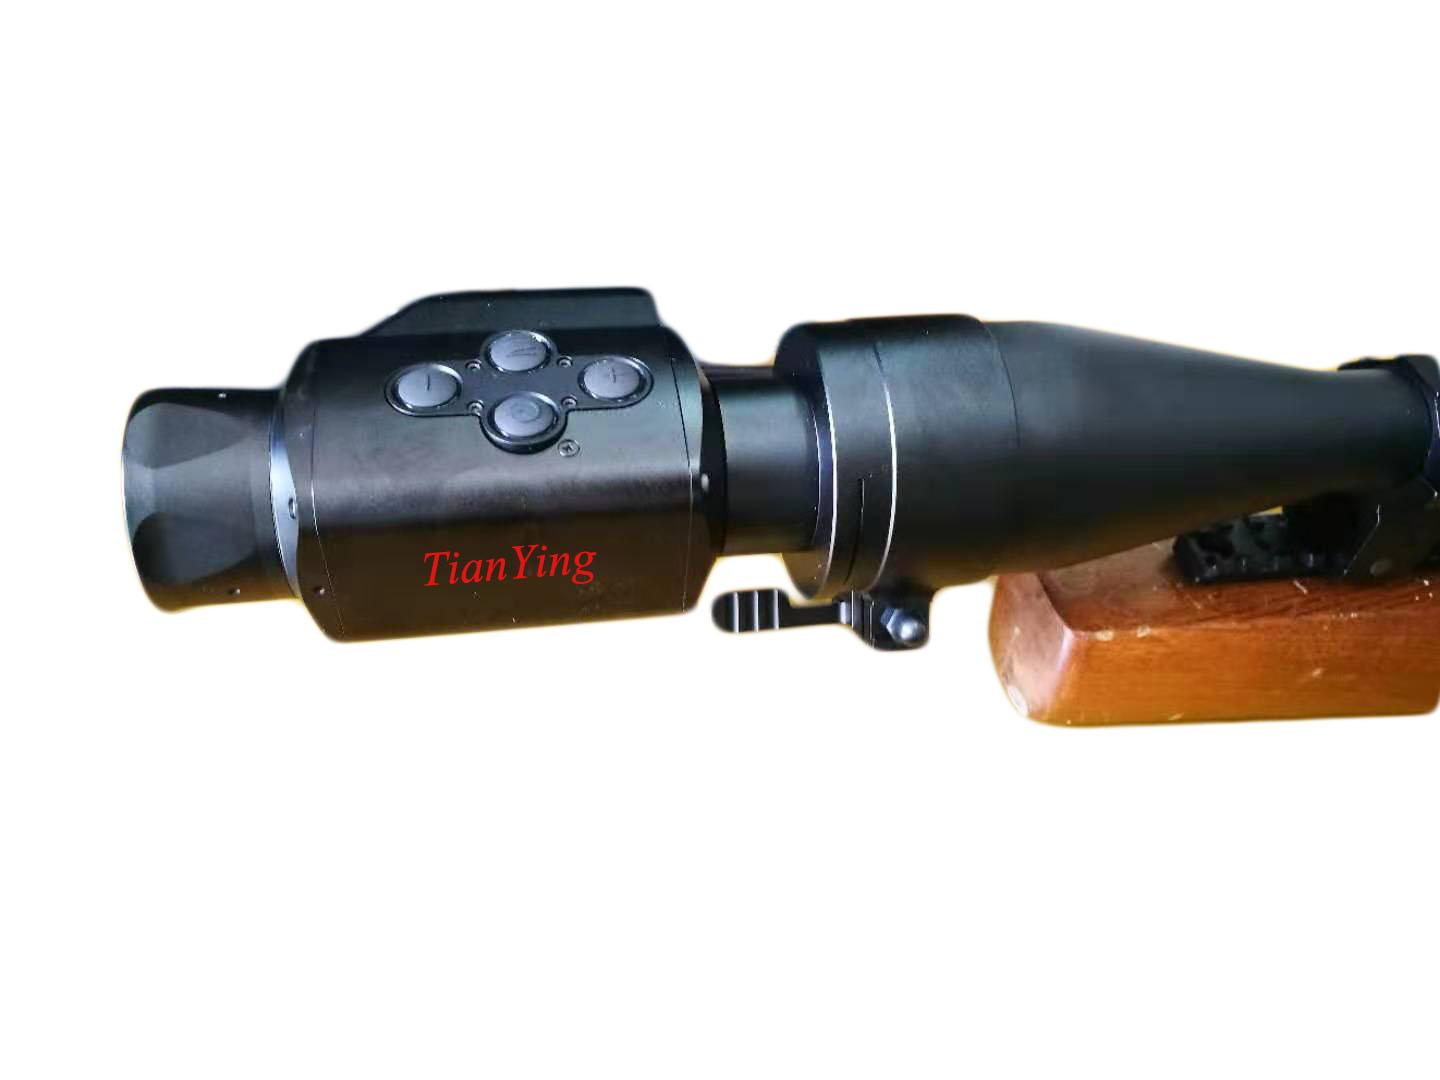 T22 384x288 300m Military Clip-On Thermal Weapon Sight Rifle Scope - 5